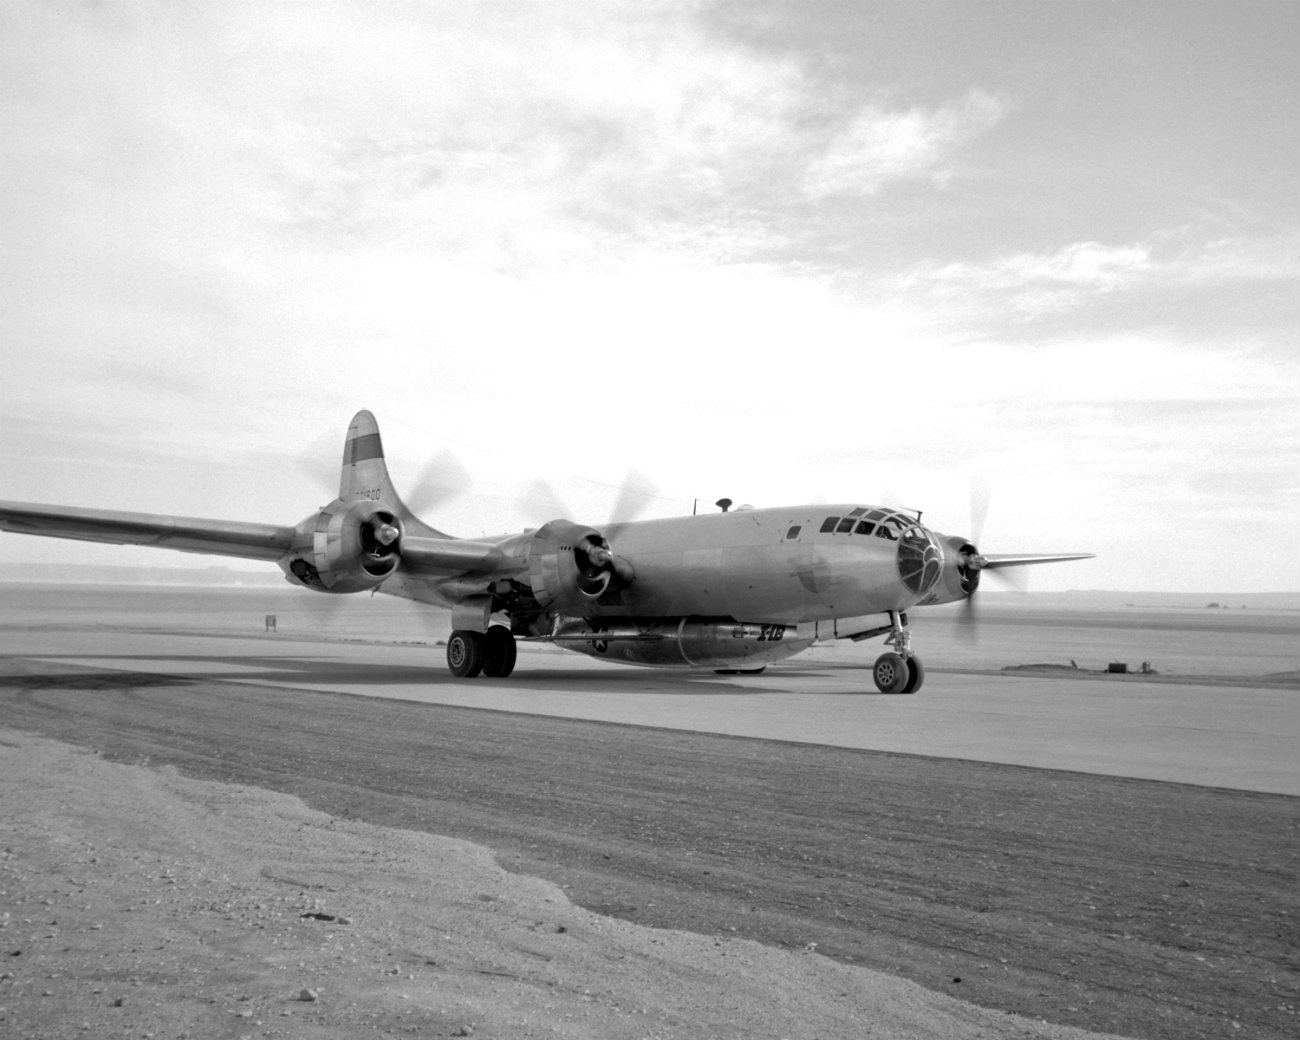 B-29 Superfortress images Taxi attached aircraft